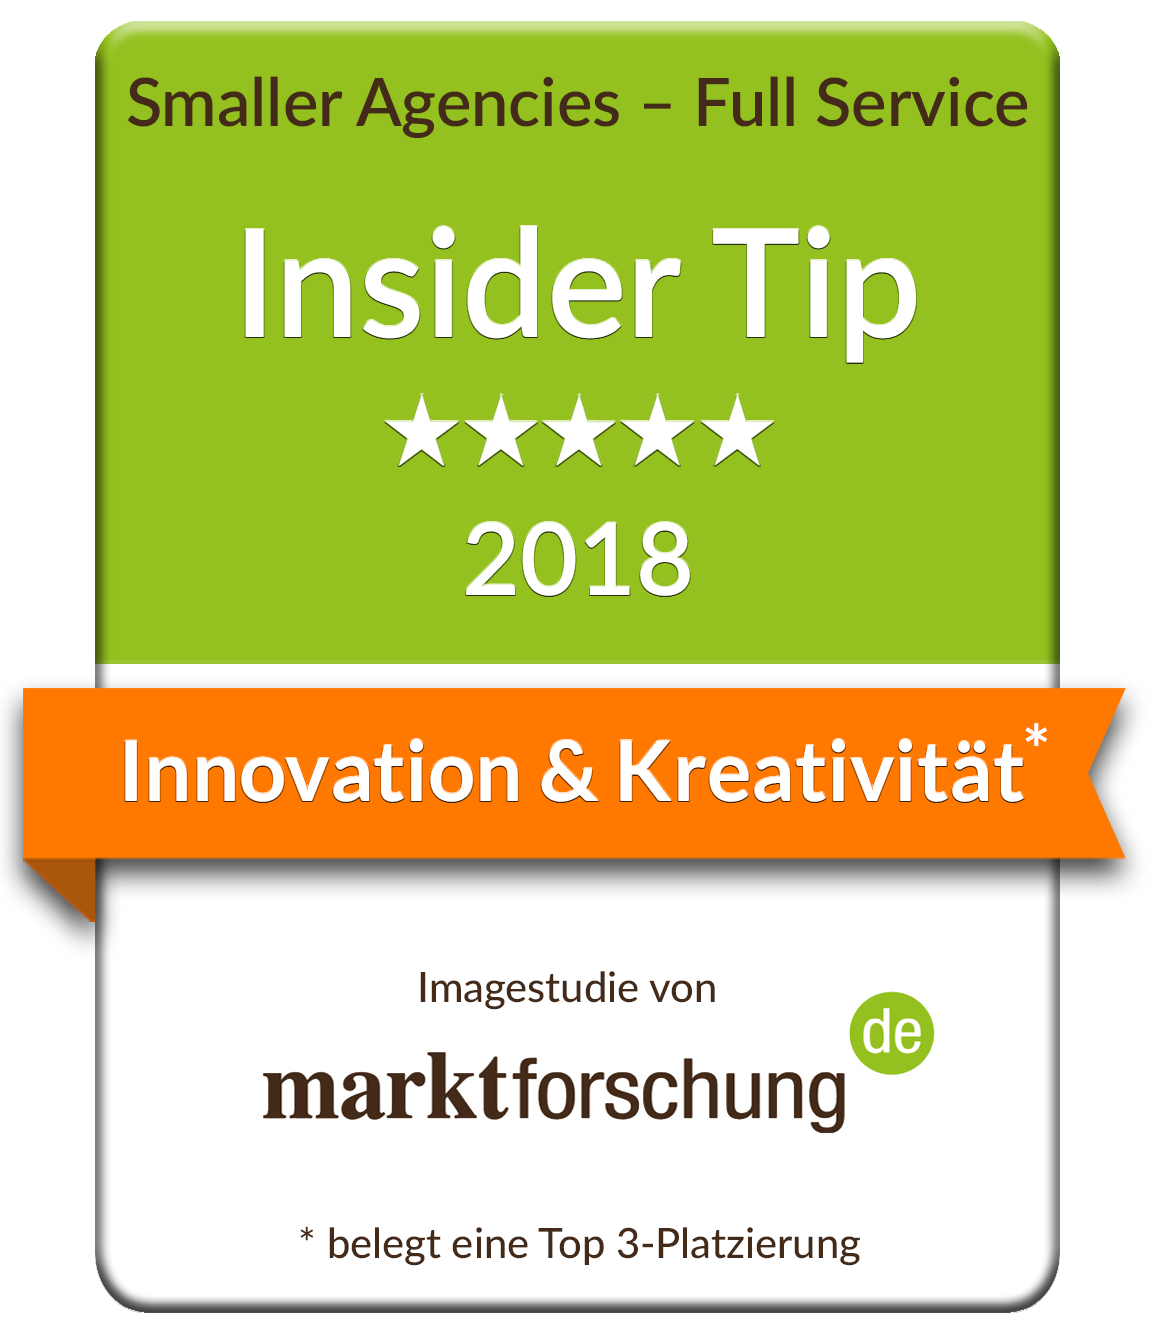 marktforschung.de Innovation & Kreativität Top 3